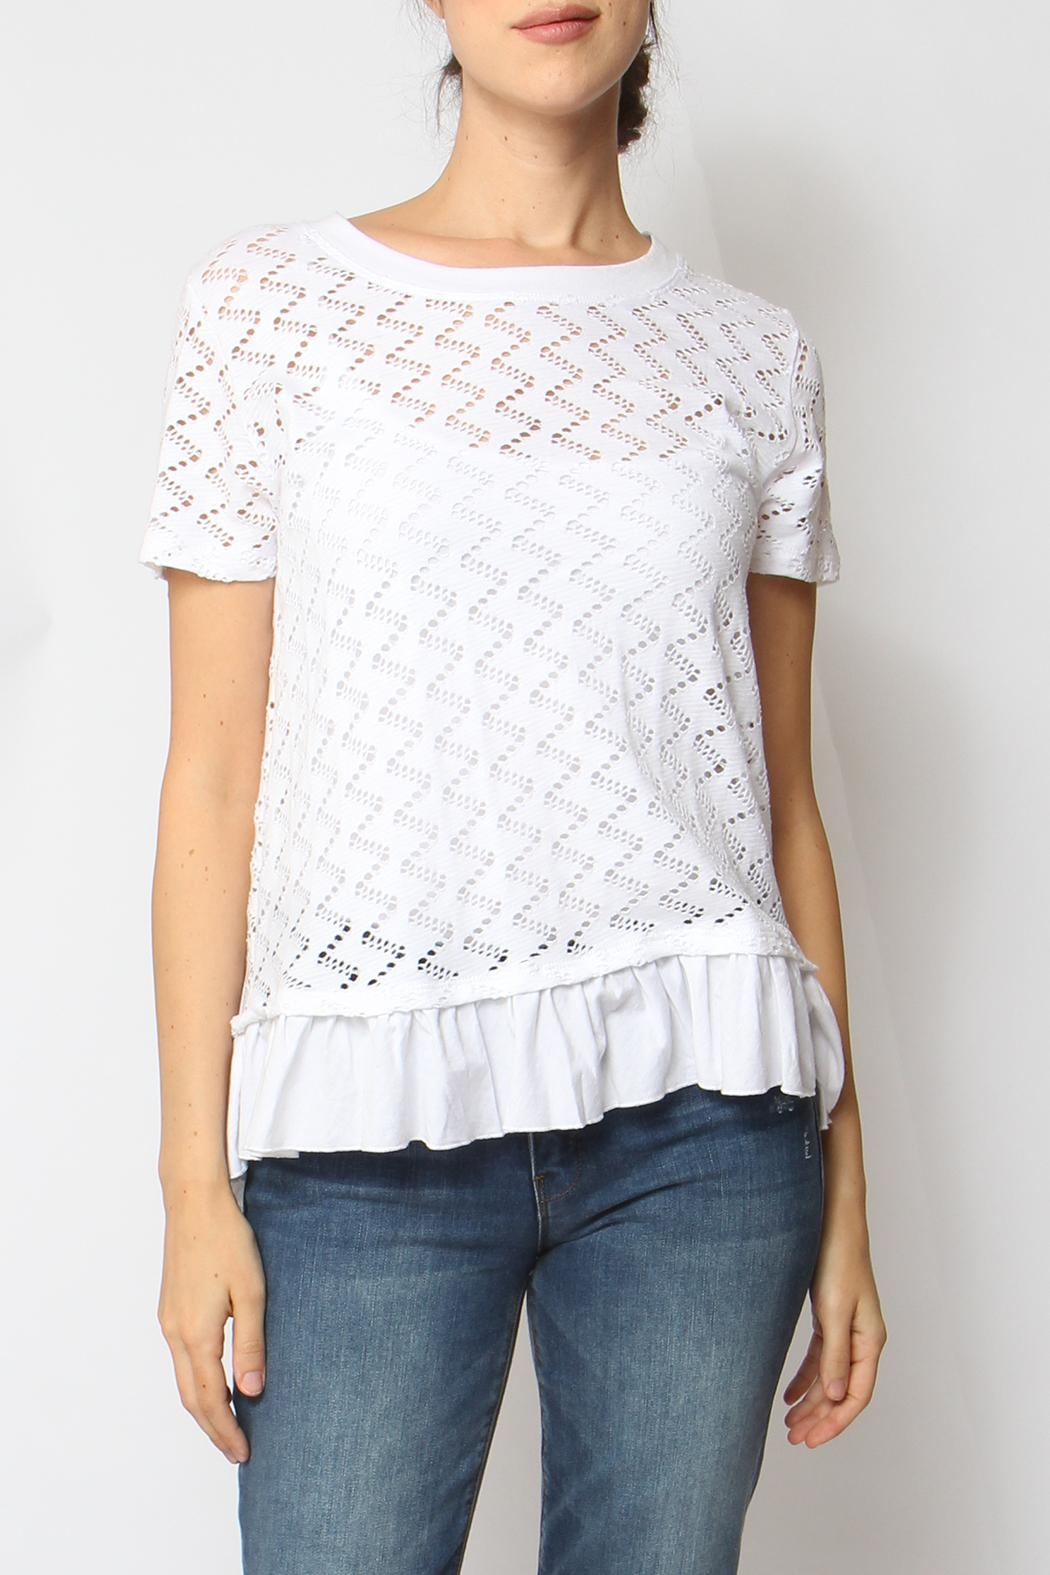 Coin 1804 Ruffle Trim Top - Front Cropped Image